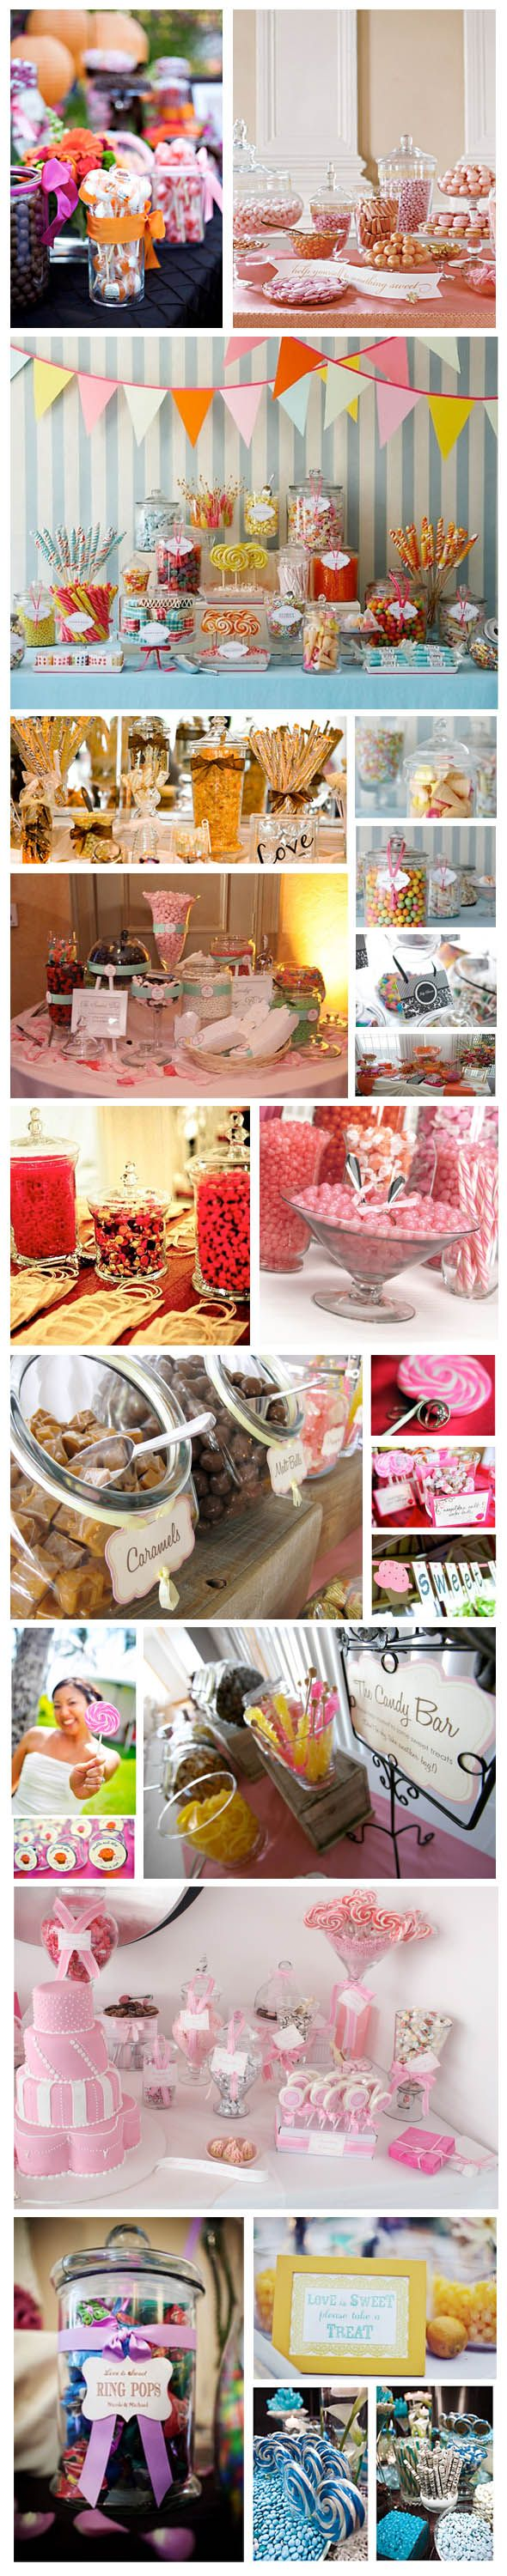 Thinking about an American Candy sweet buffet...